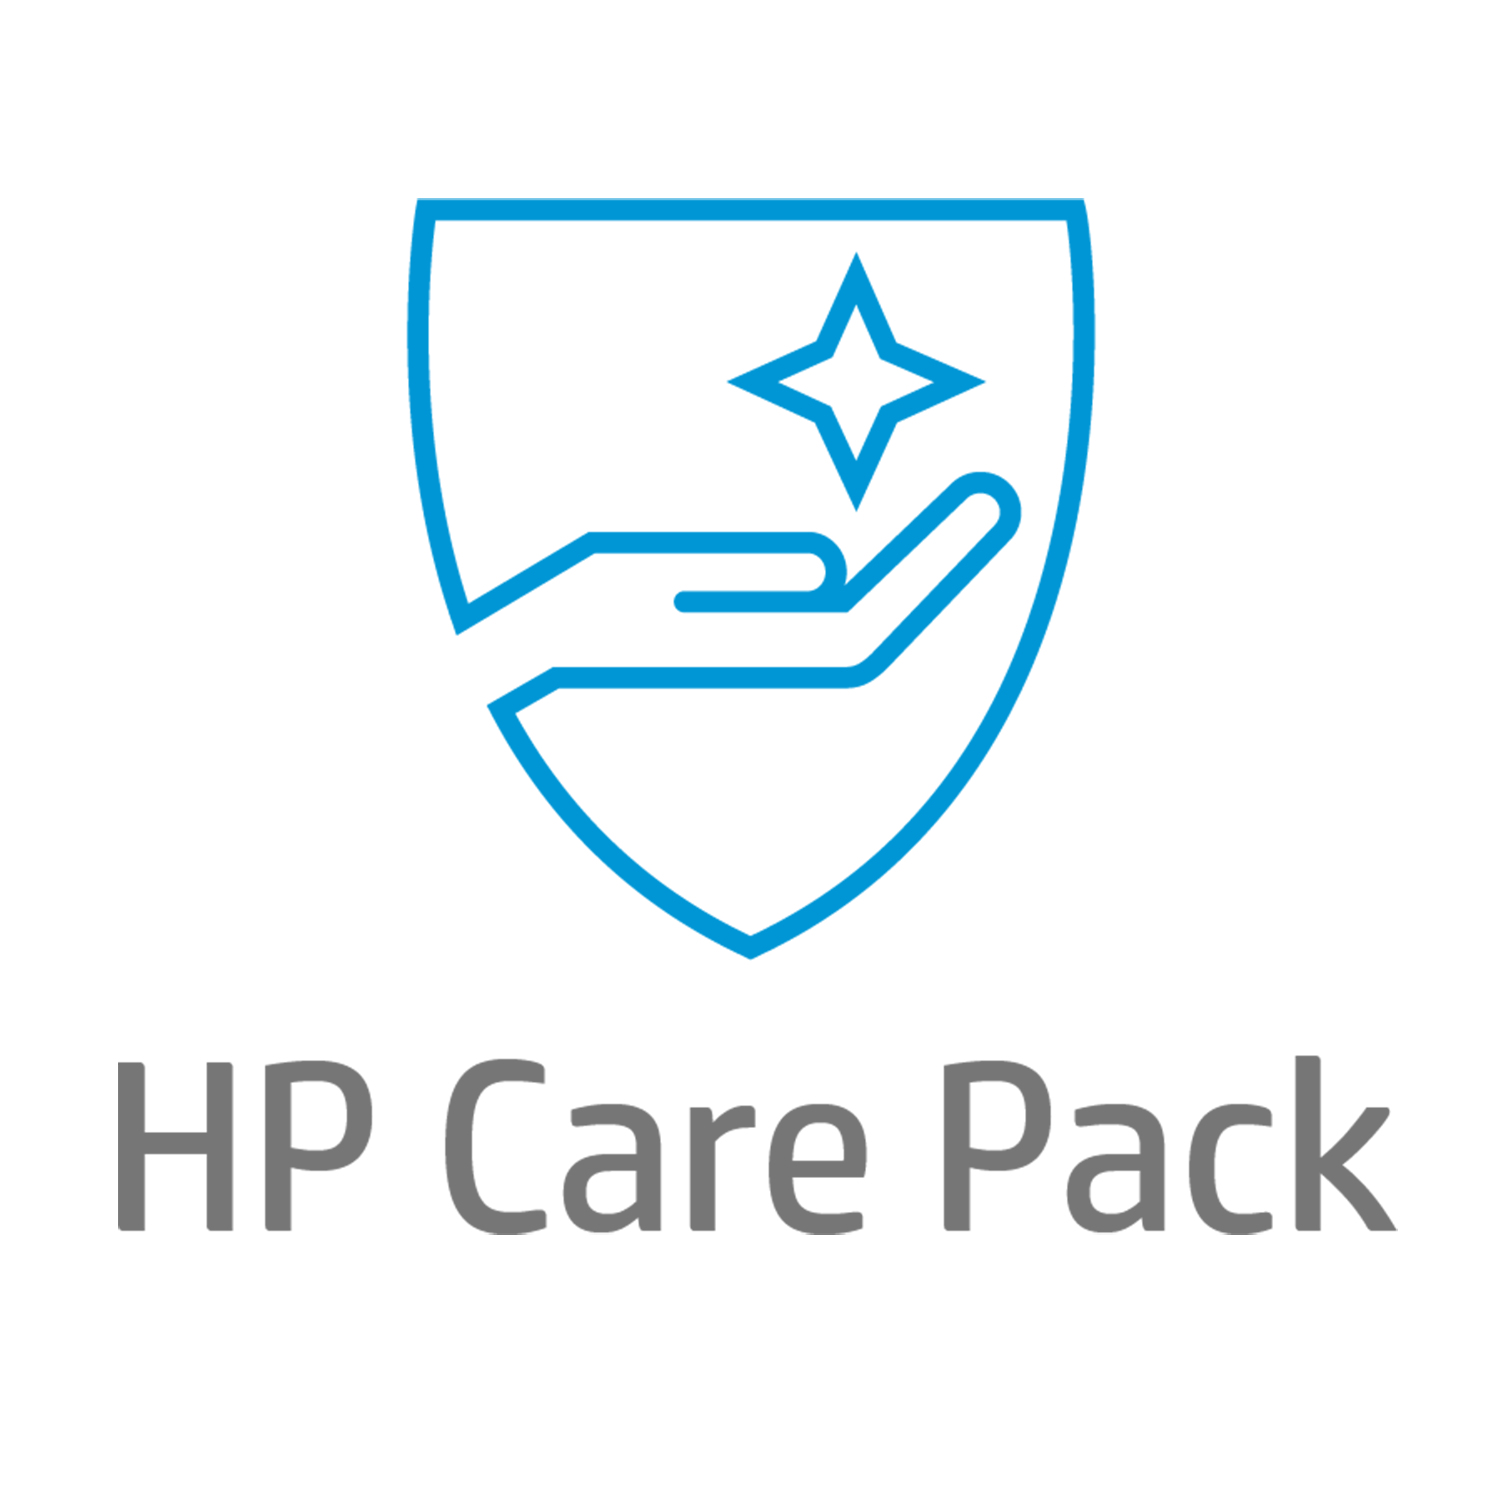 HP 5 year Next Business Day Onsite Hardware Support w/Travel for Notebooks